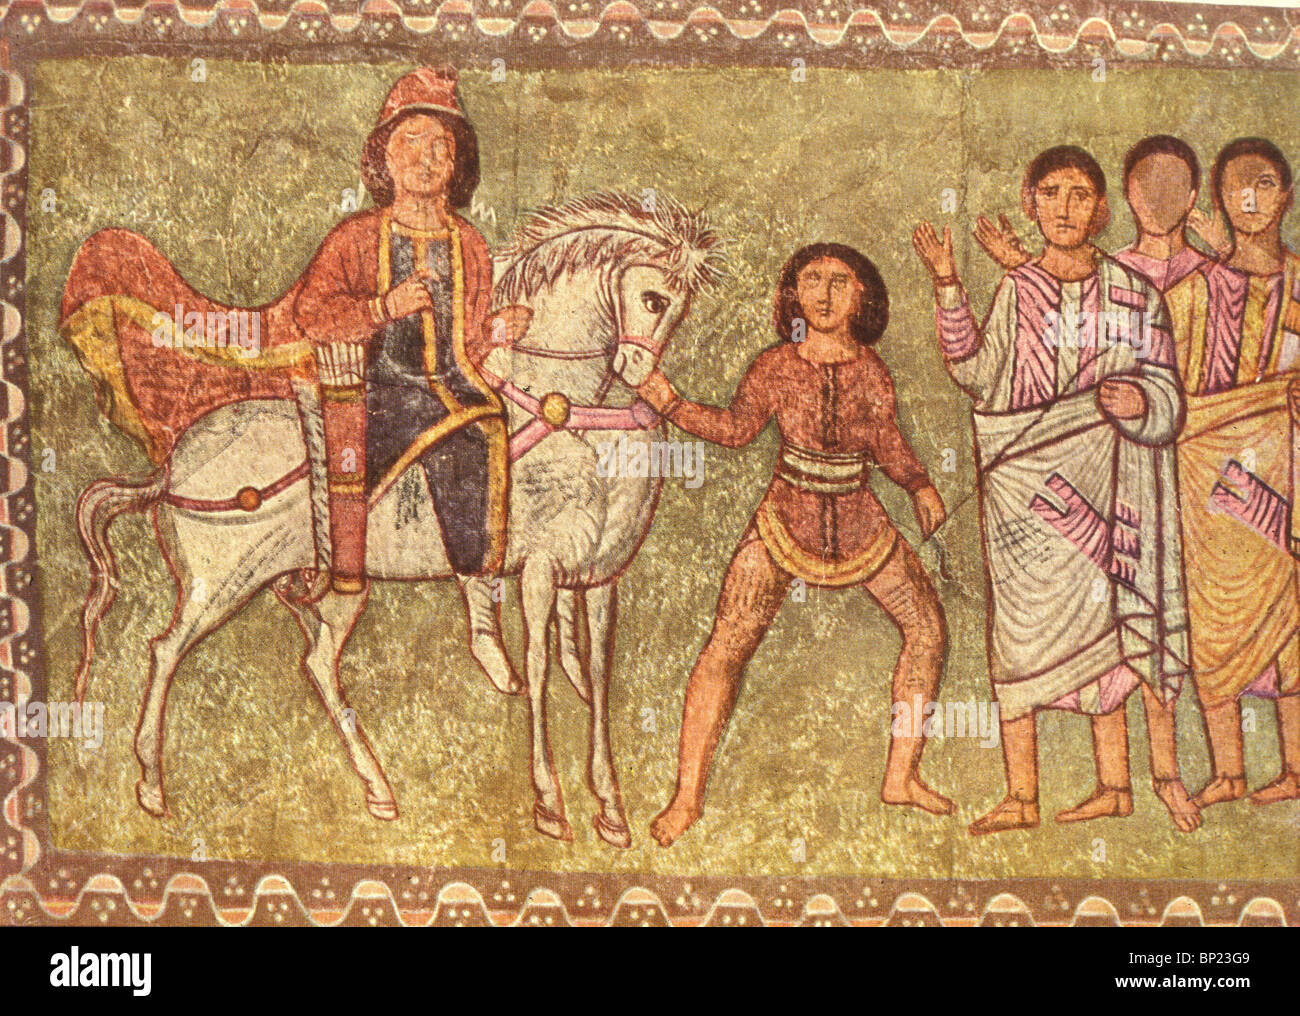 202. MORDECHAI AND HAMAN, WALL PAINTING FROM THE DURA EUROPOS, SYNAGOGUE, 3RD. C. - Stock Image